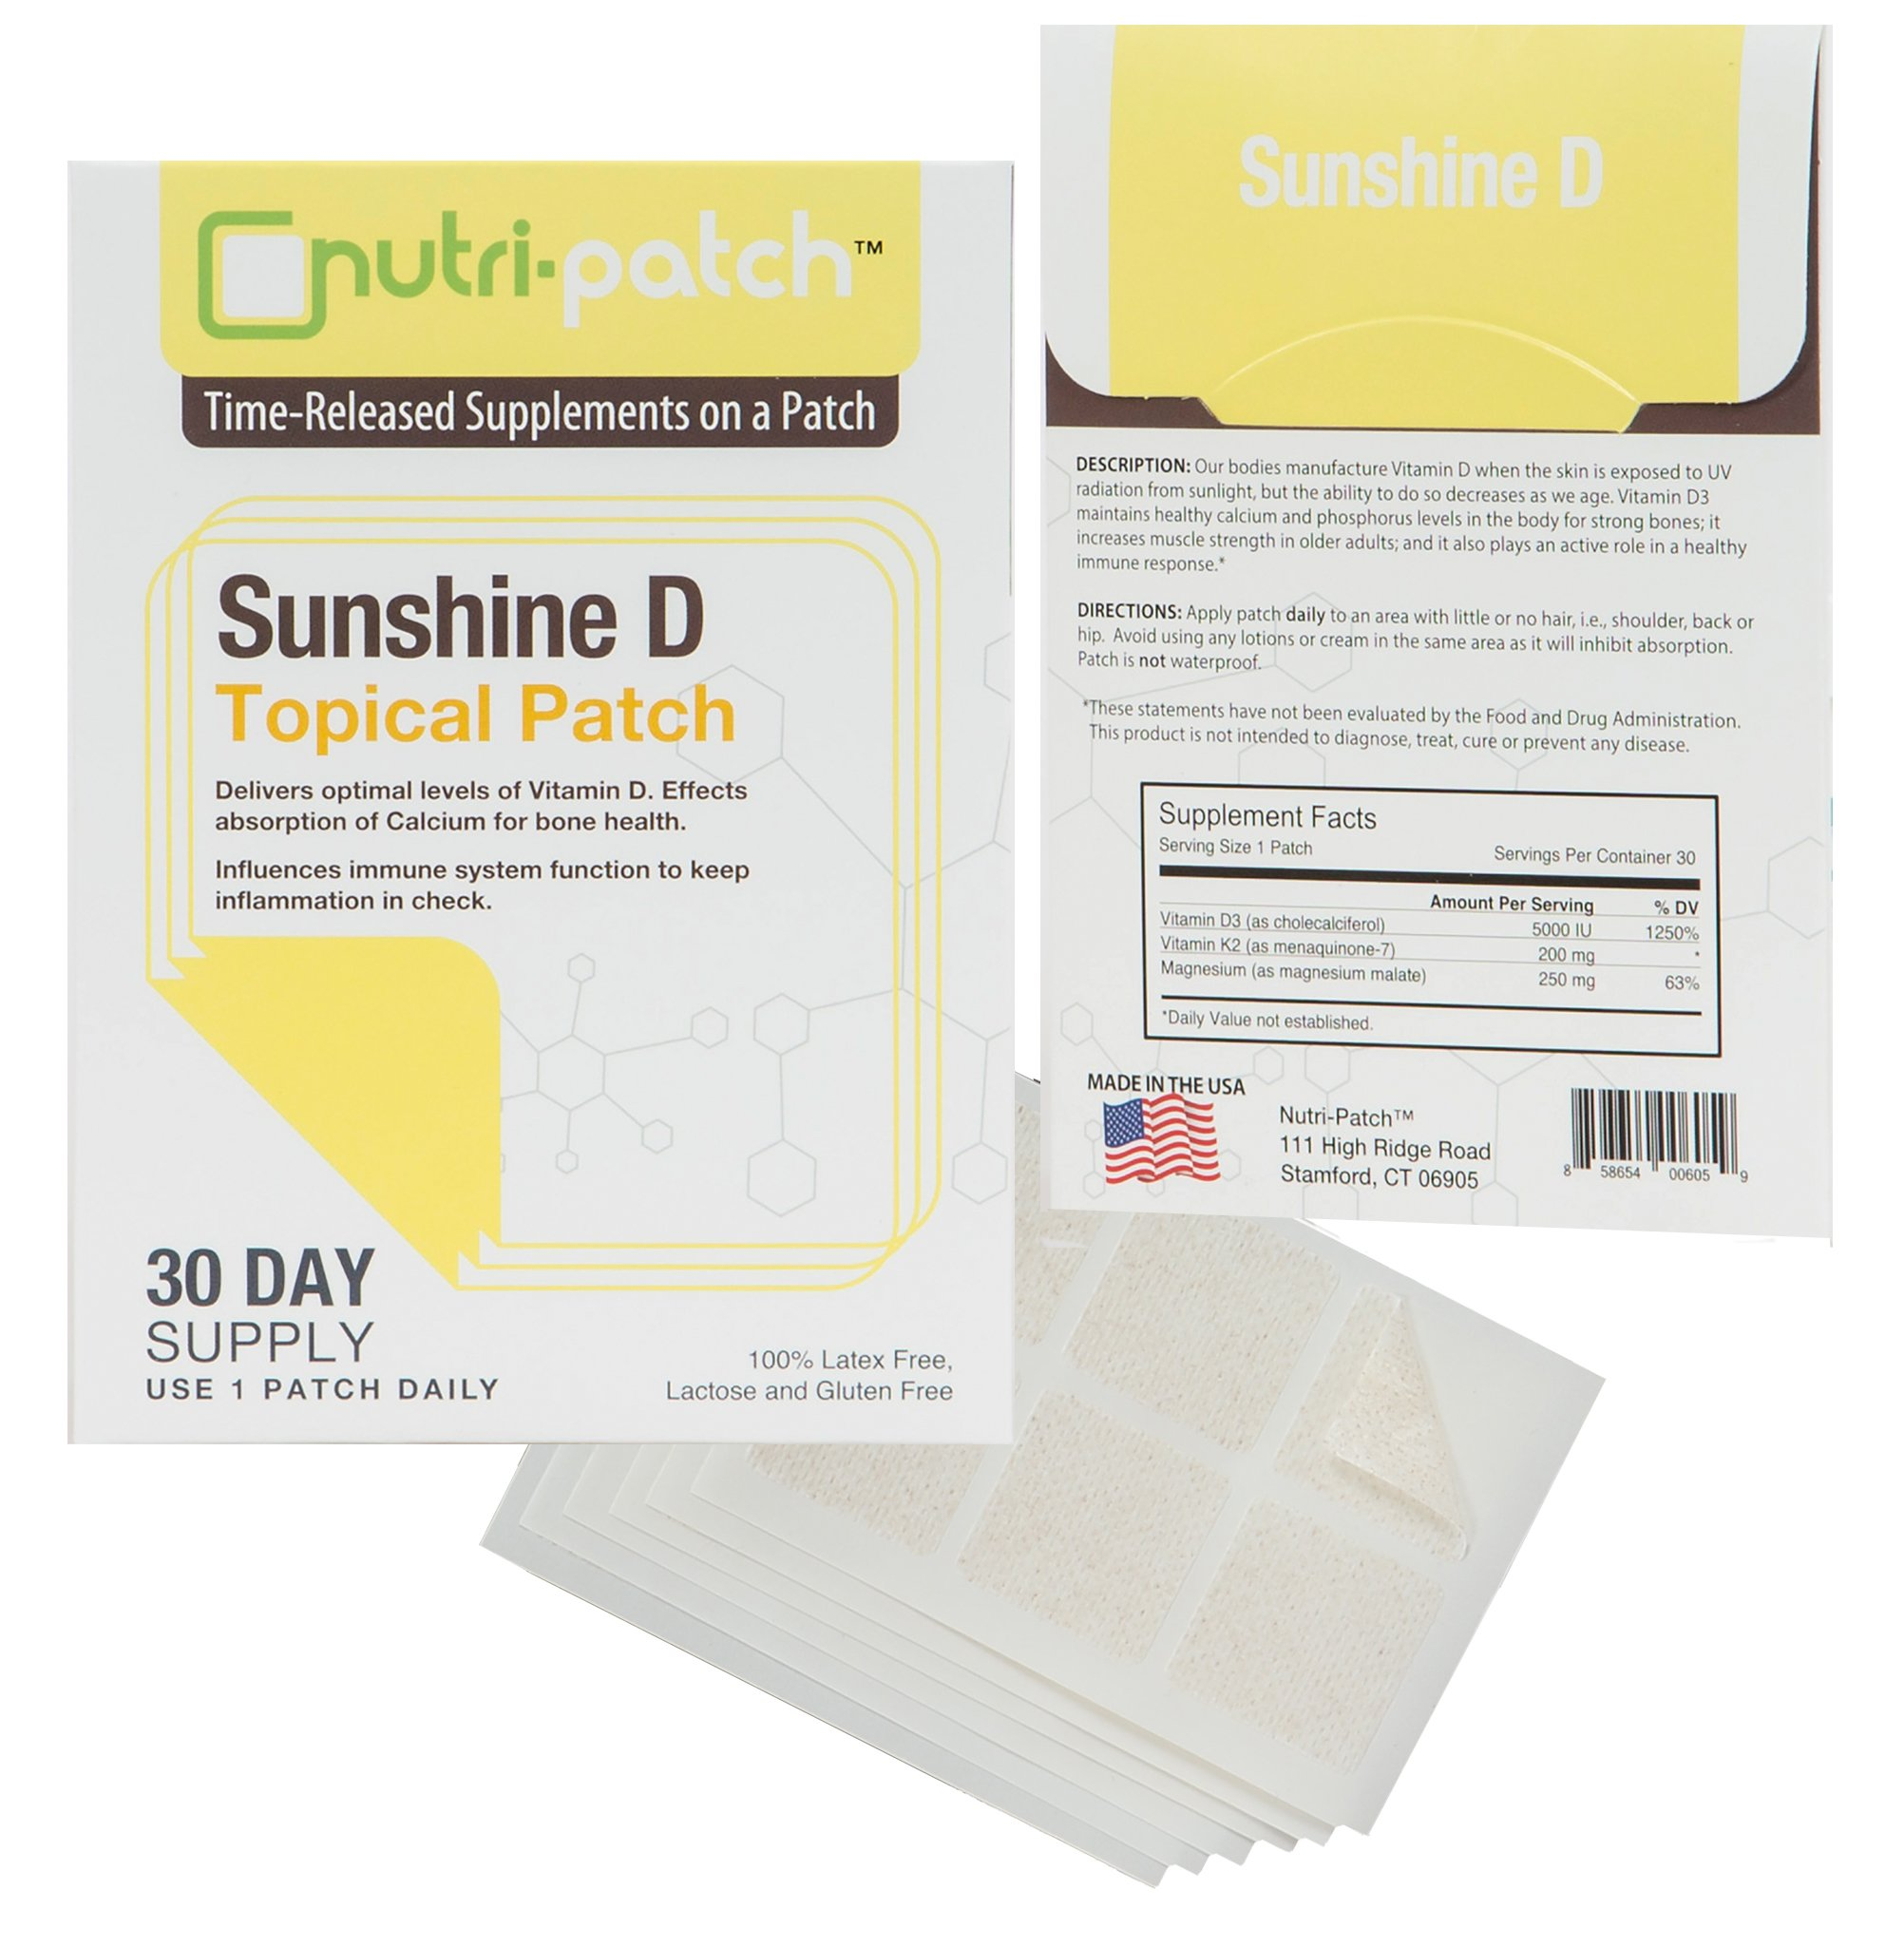 Sunshine D Topical Nutrient Skin Patch from NUTRI-PATCH®